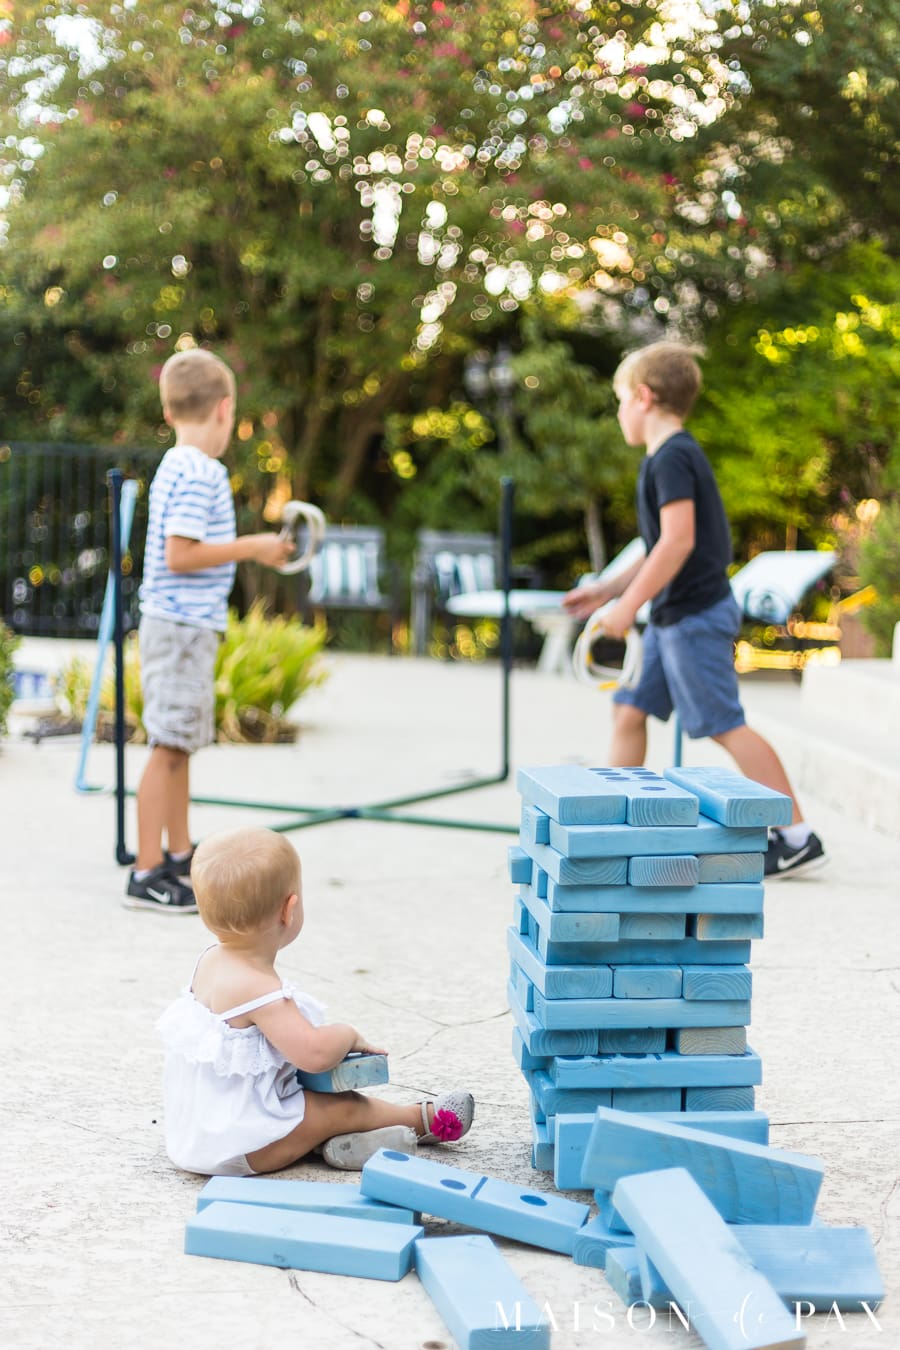 baby sitting by giant Jenga game with boys playing ring toss in background | Maison de Pax